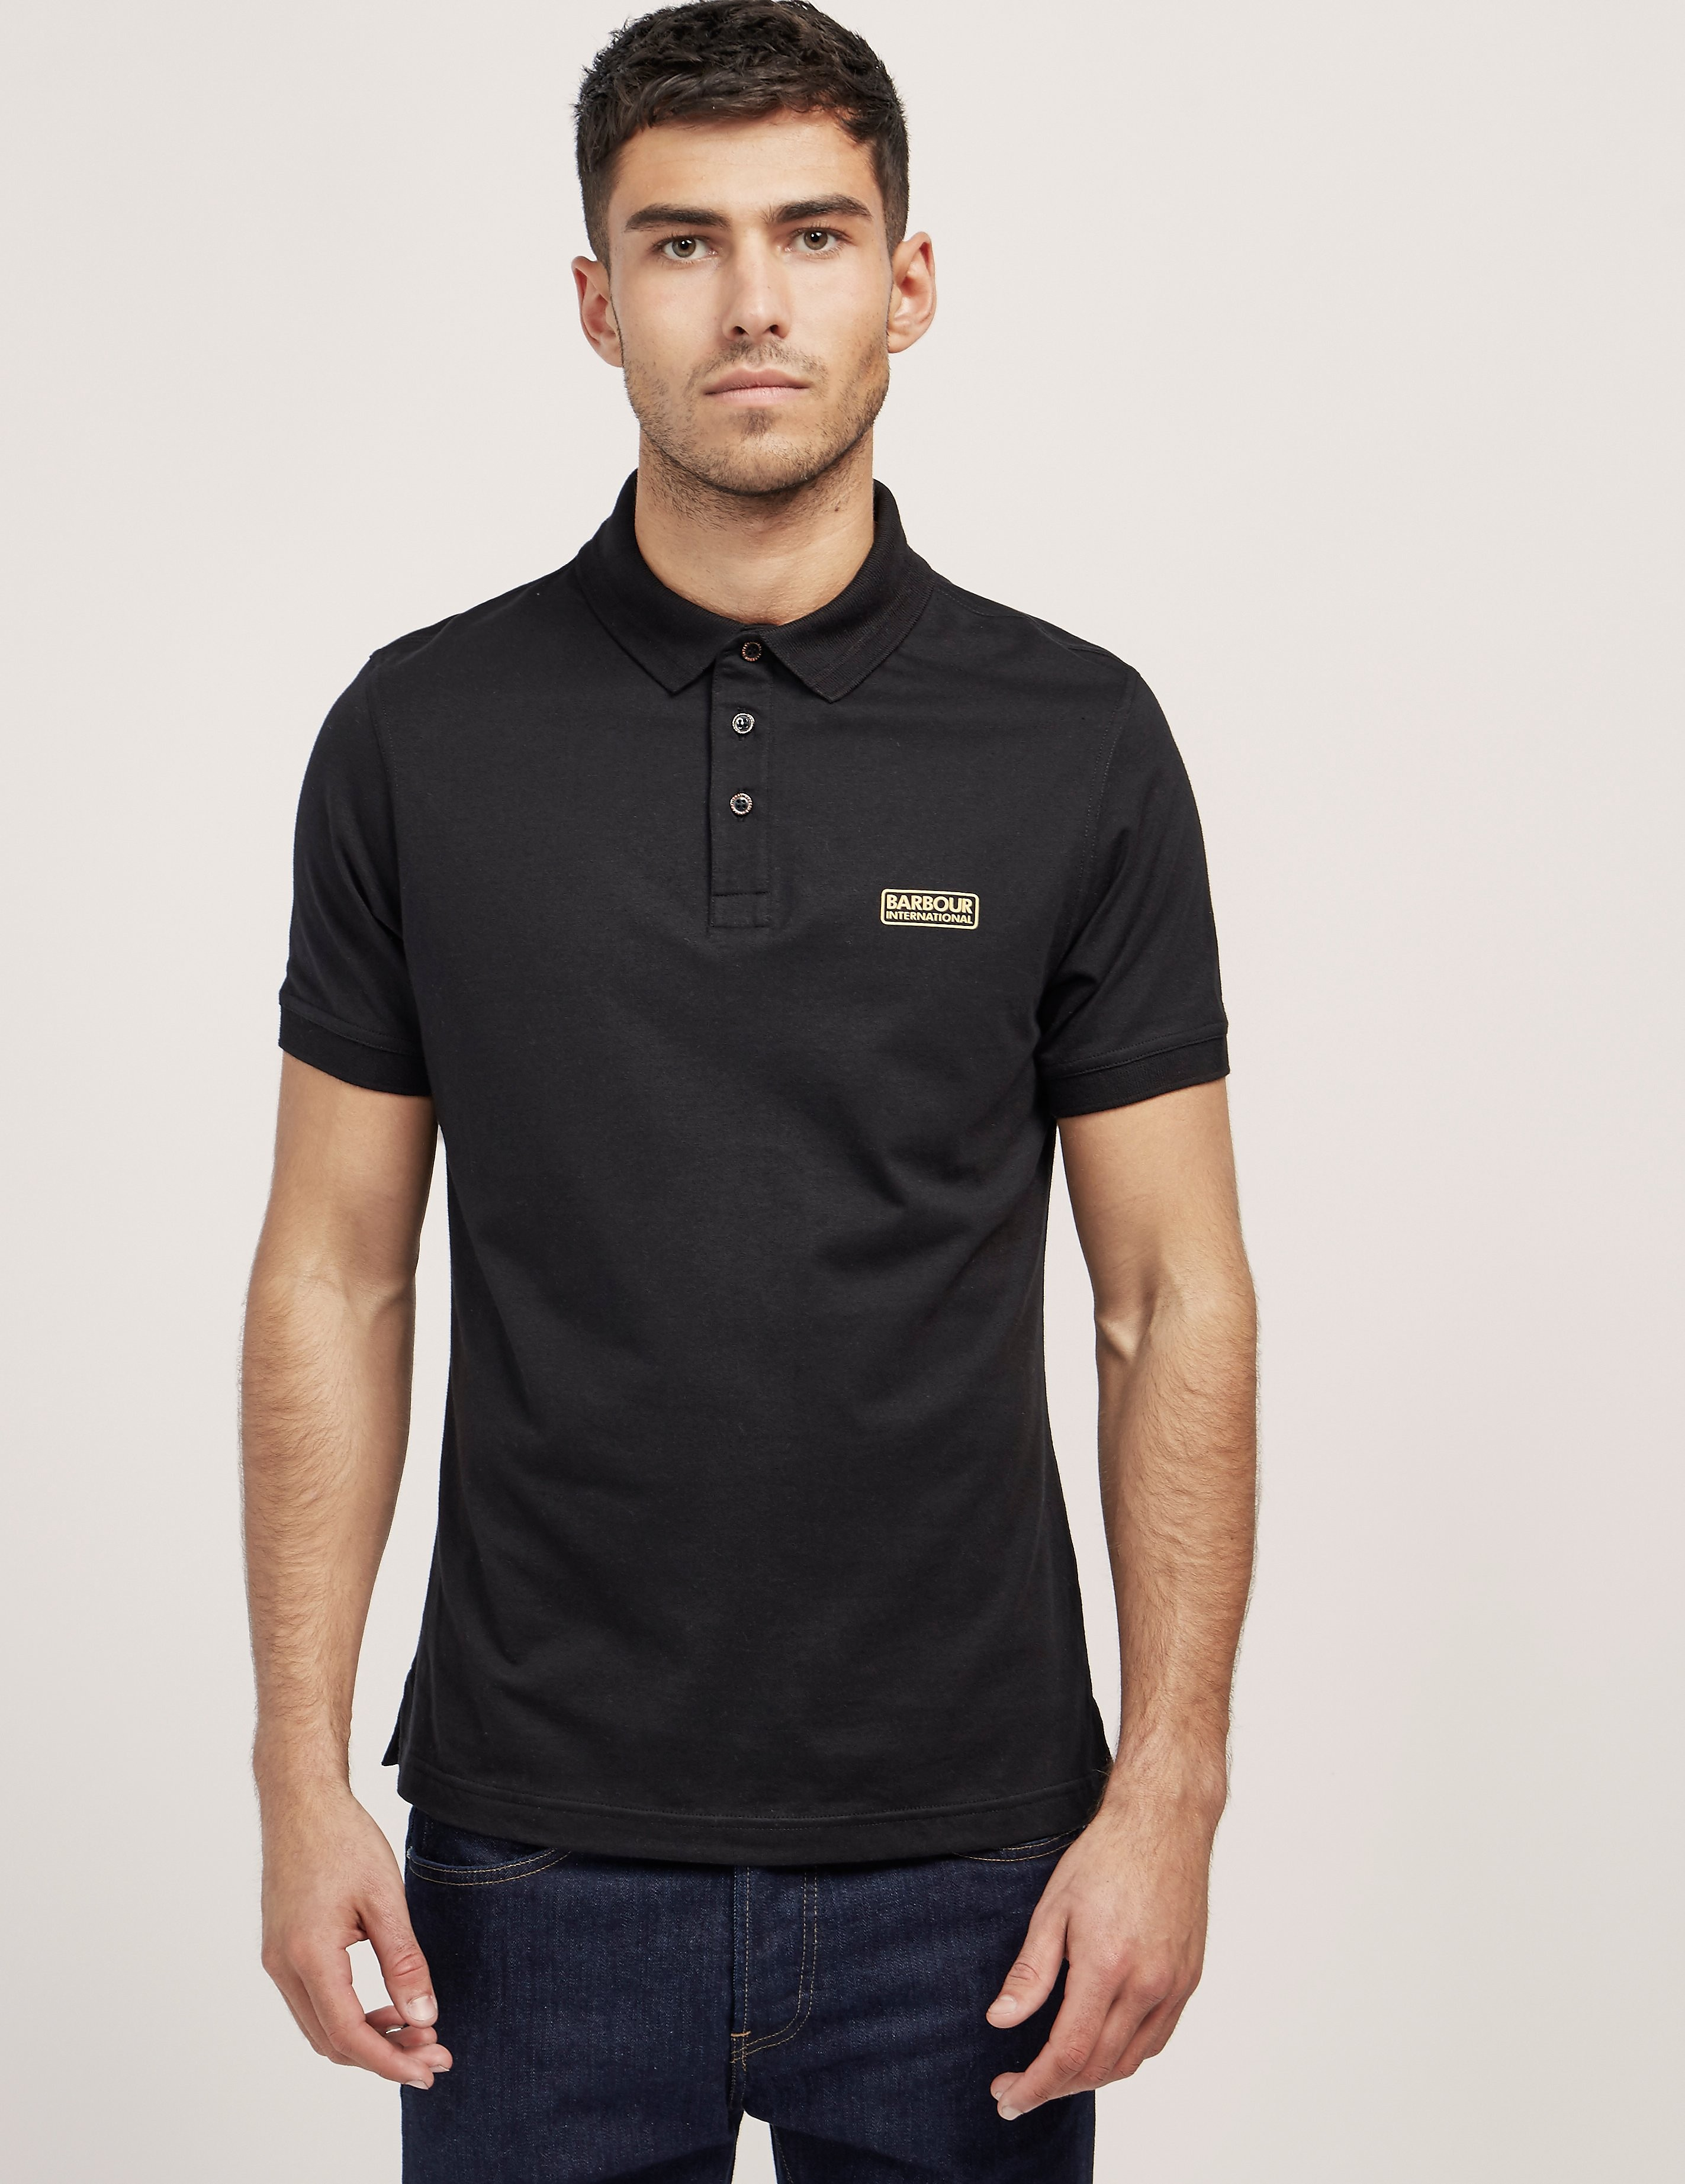 Barbour International Logo Short Sleeve Polo Shirt